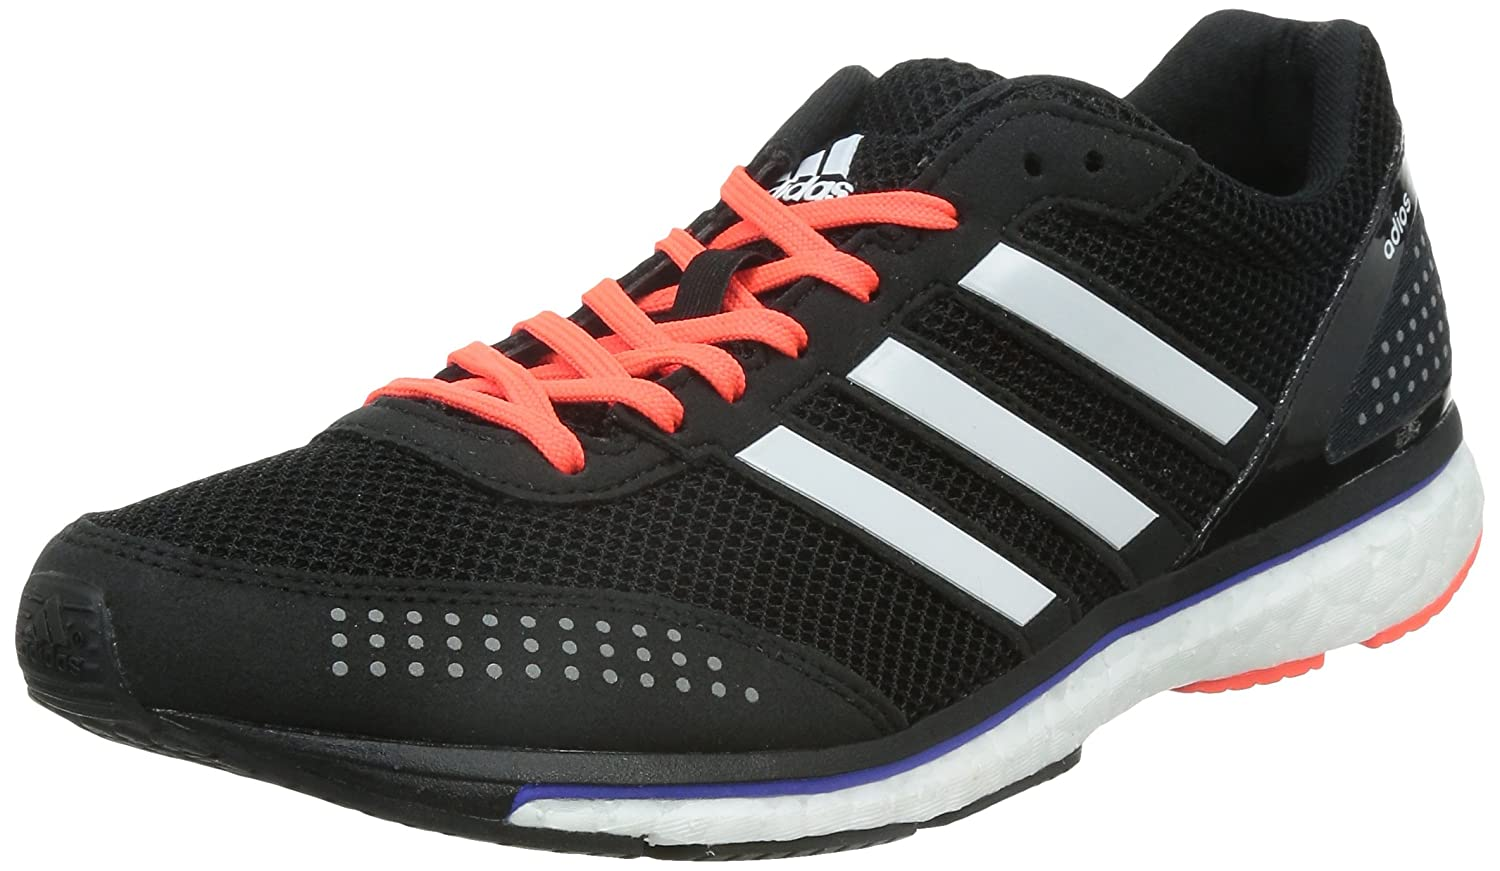 official photos 793ae e56d6 Adidas Men s Adizero Adios Boost 2 M Black, White and Raw Yellow Mesh  Running Shoes - 6 UK  Buy Online at Low Prices in India - Amazon.in